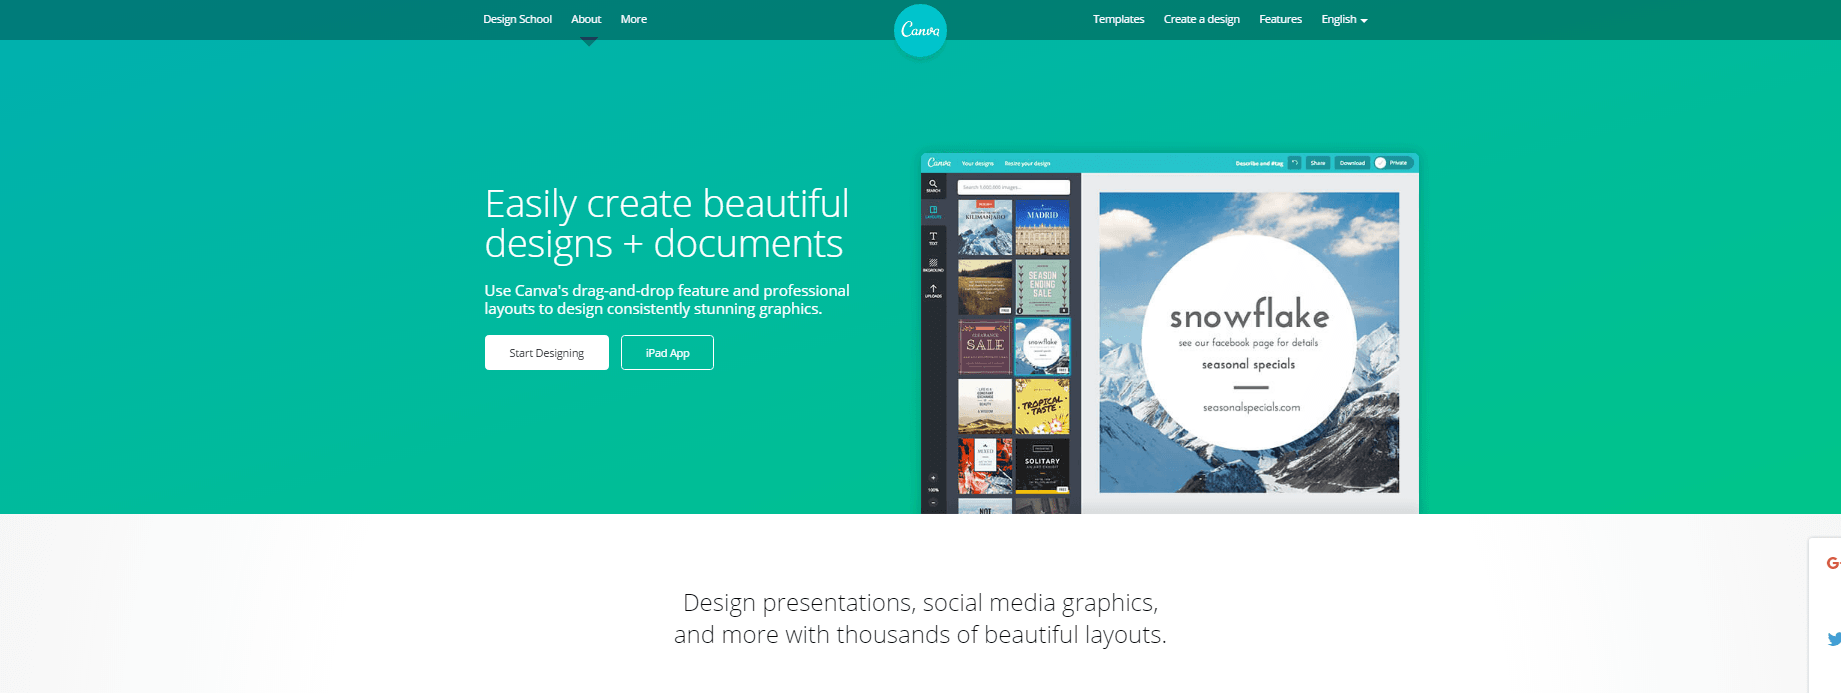 Free Graphic Design Tools